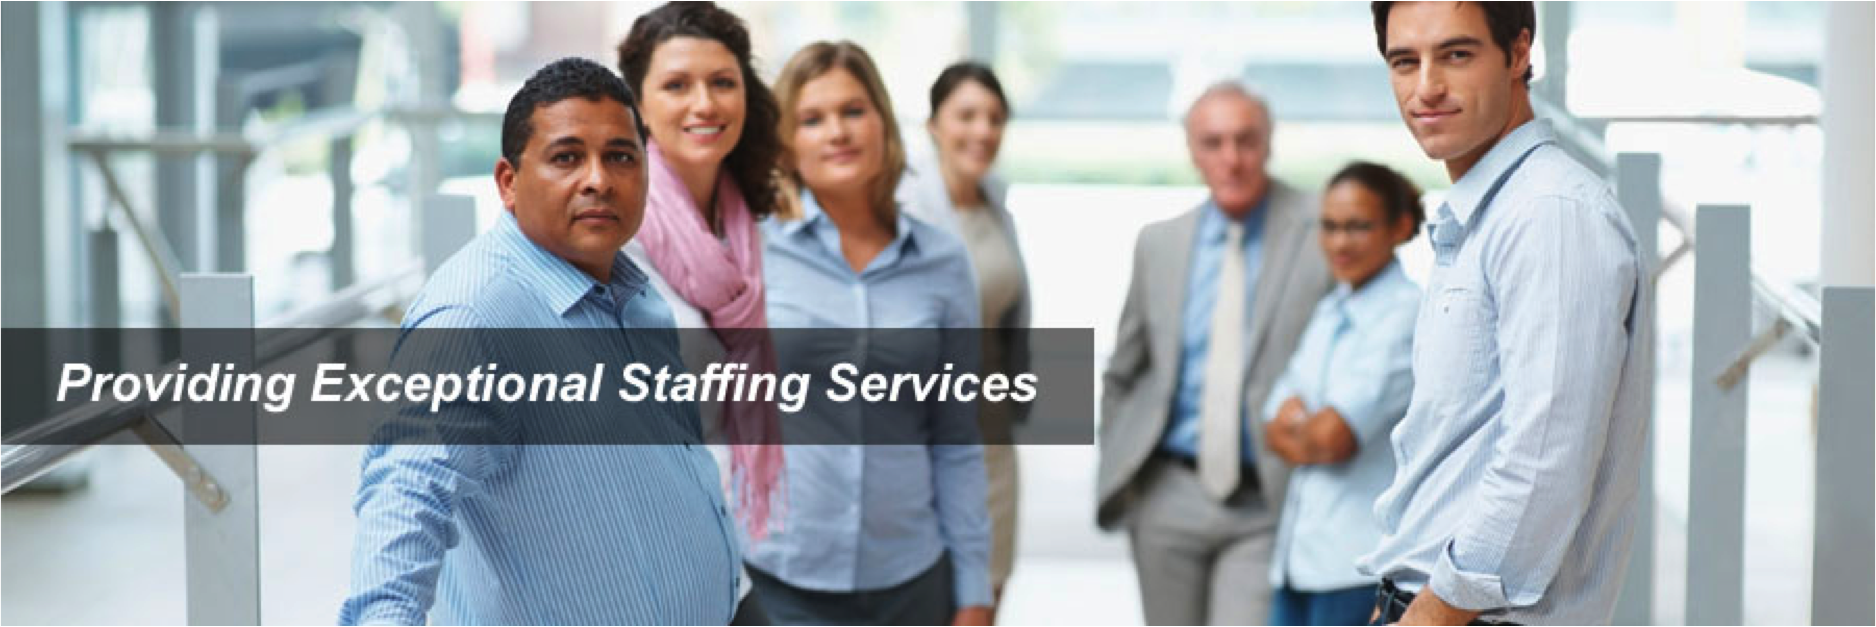 Temp Staffing Banners Mobile Marketing Banners